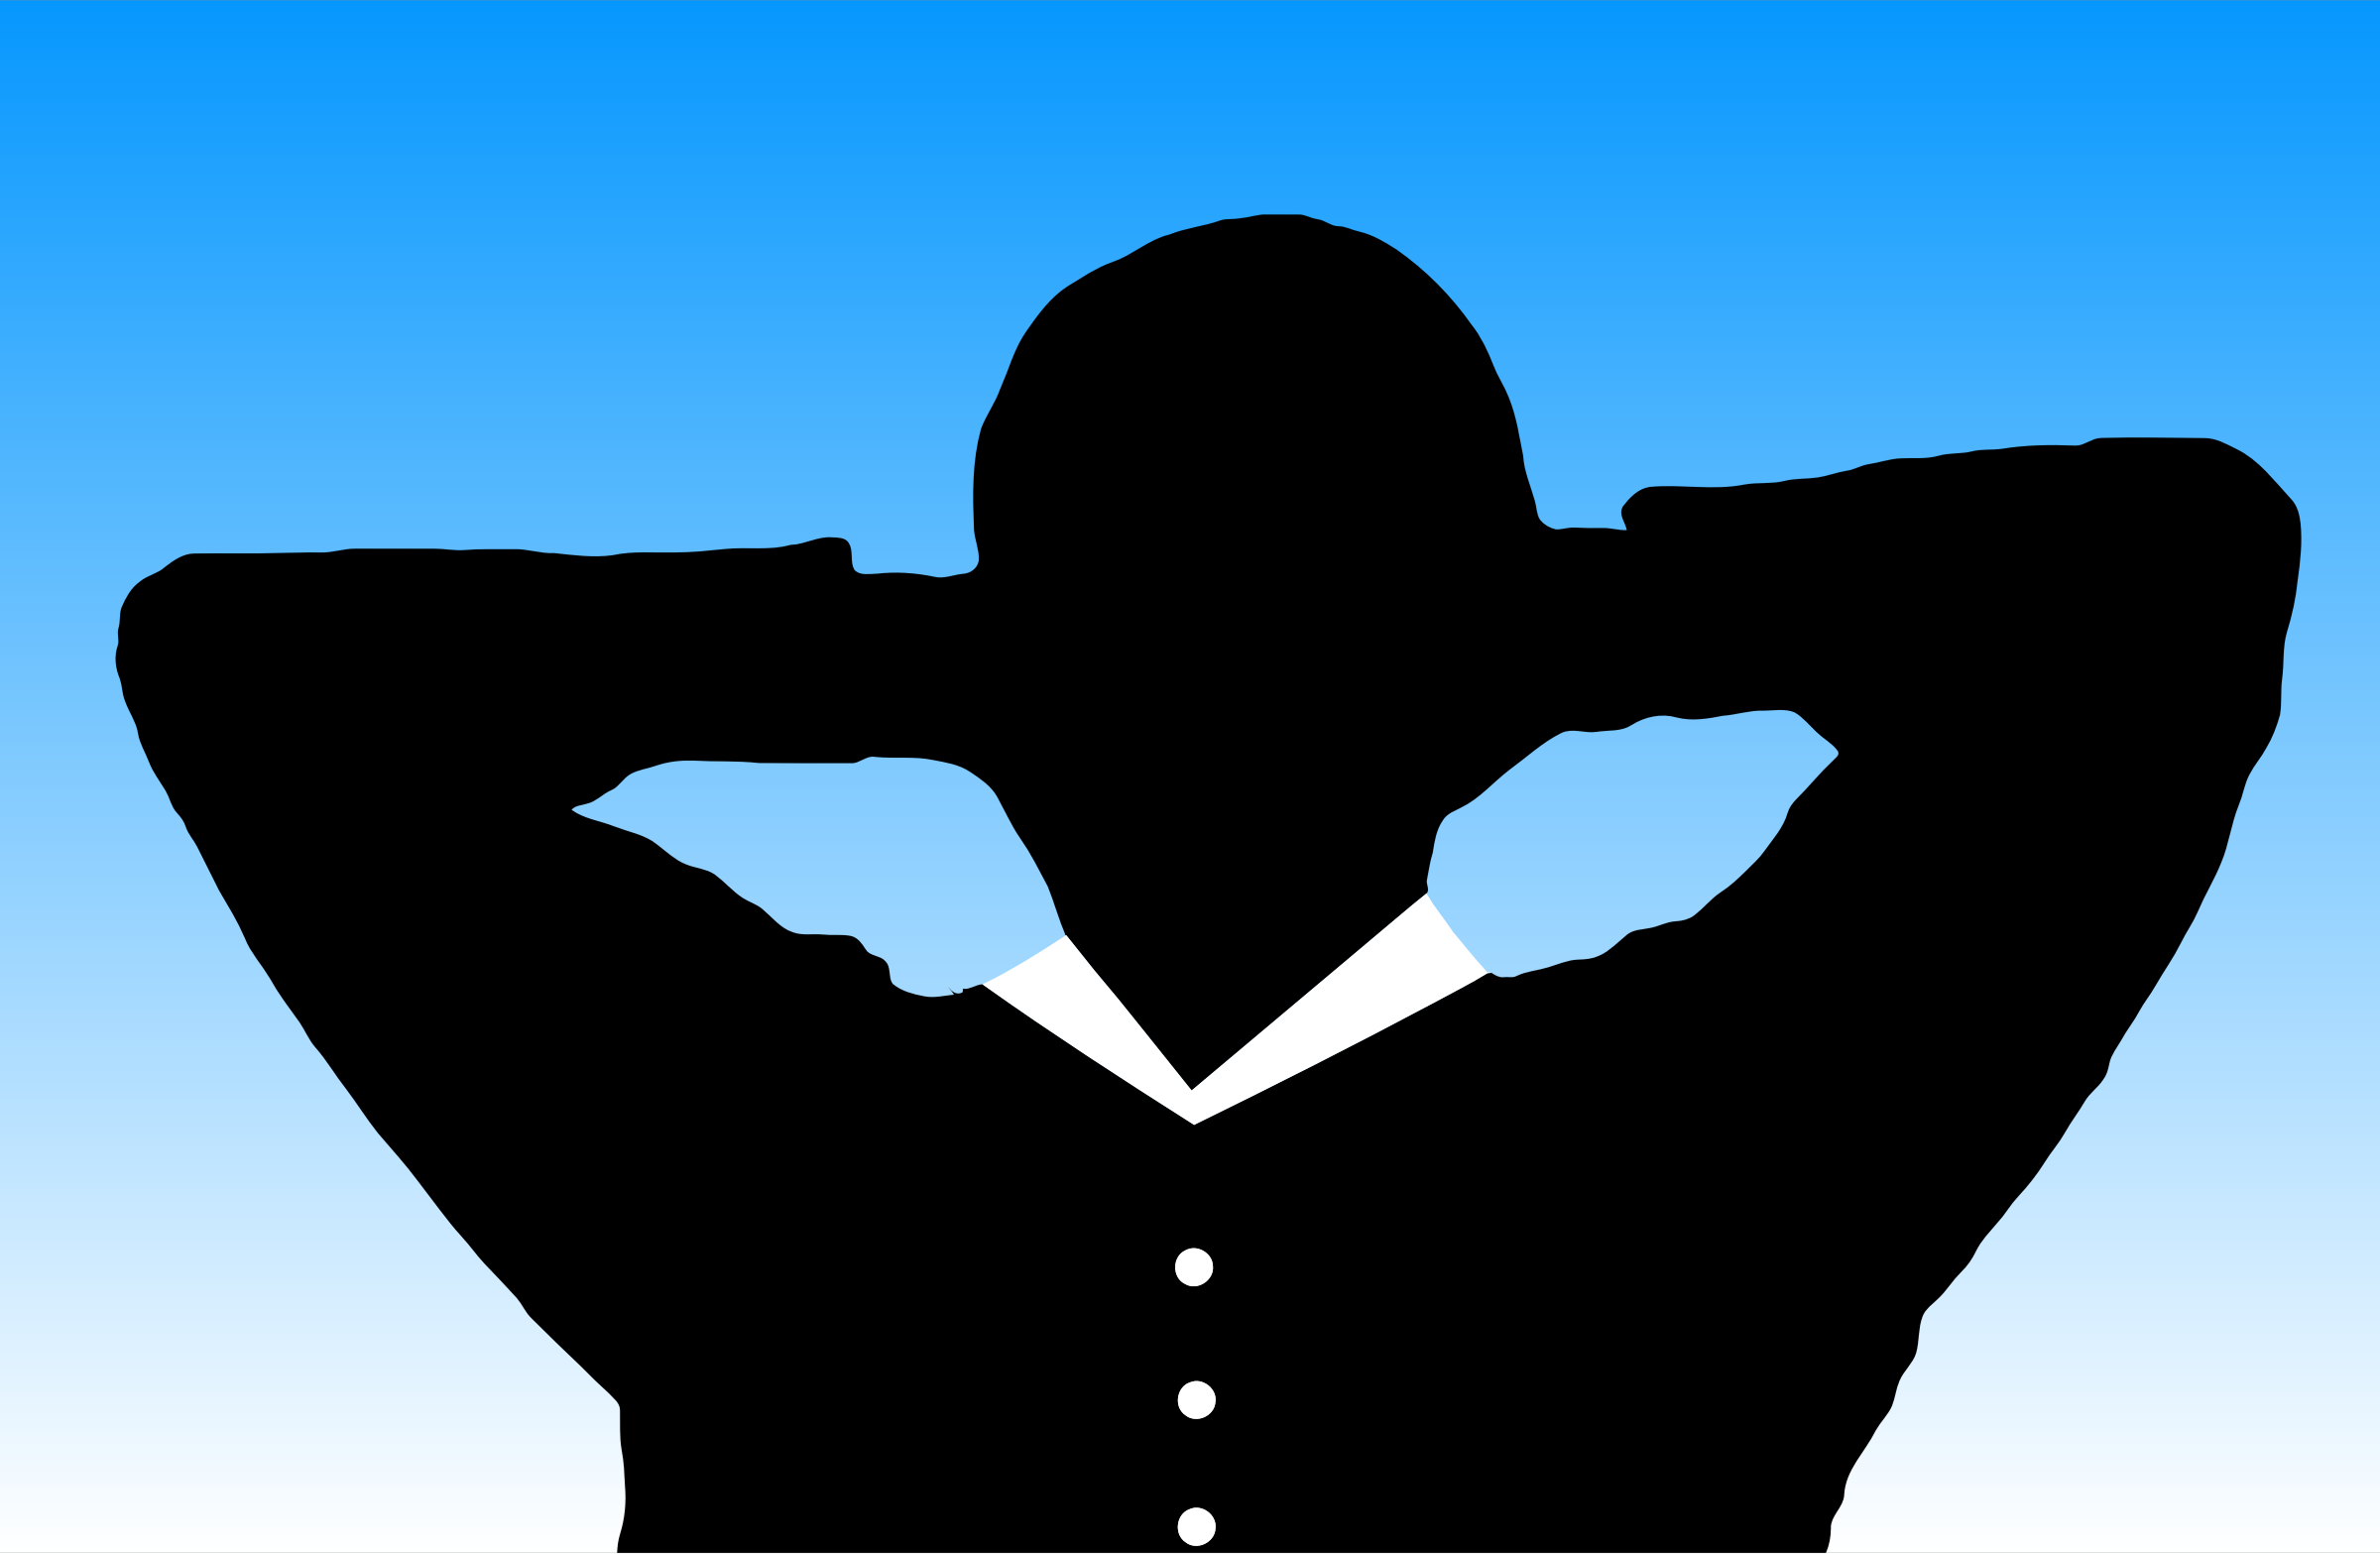 Man Relaxing With Hands Behind Head Silhouette With Background by GDJ